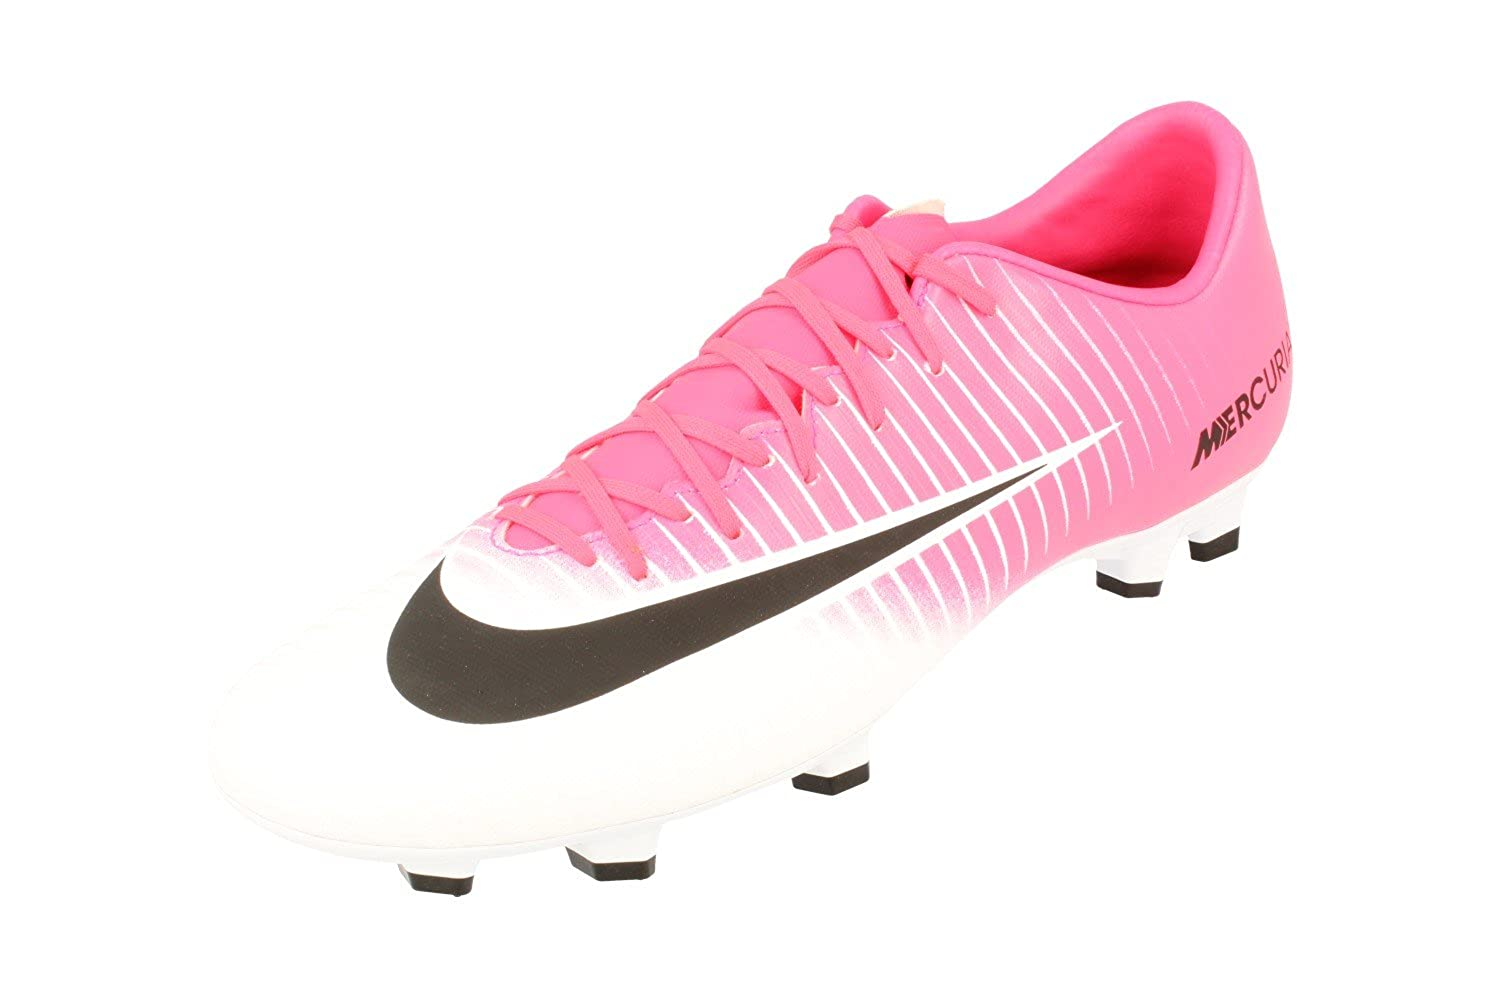 52a75994e365 Amazon.com | Nike Mercurial Victory Vi FG Mens Football Boots 831964 Soccer  Cleats (UK 8 US 9 EU 42.5, Racer Pink Black White 601) | Soccer